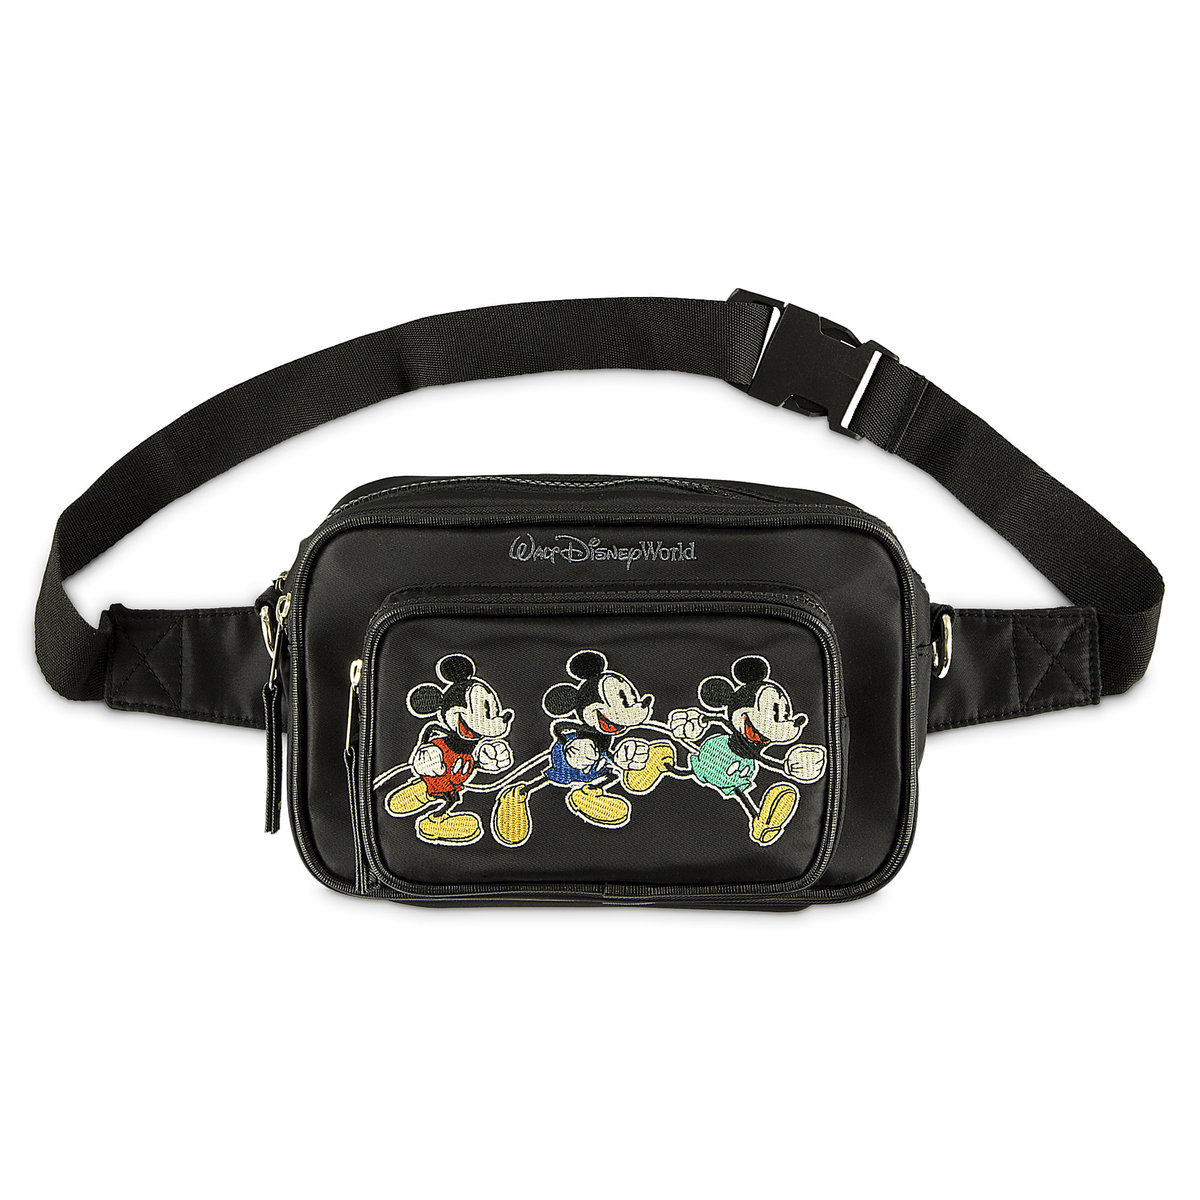 Disney Hip Pack Bag Timeless Mickey Mouse Disney World